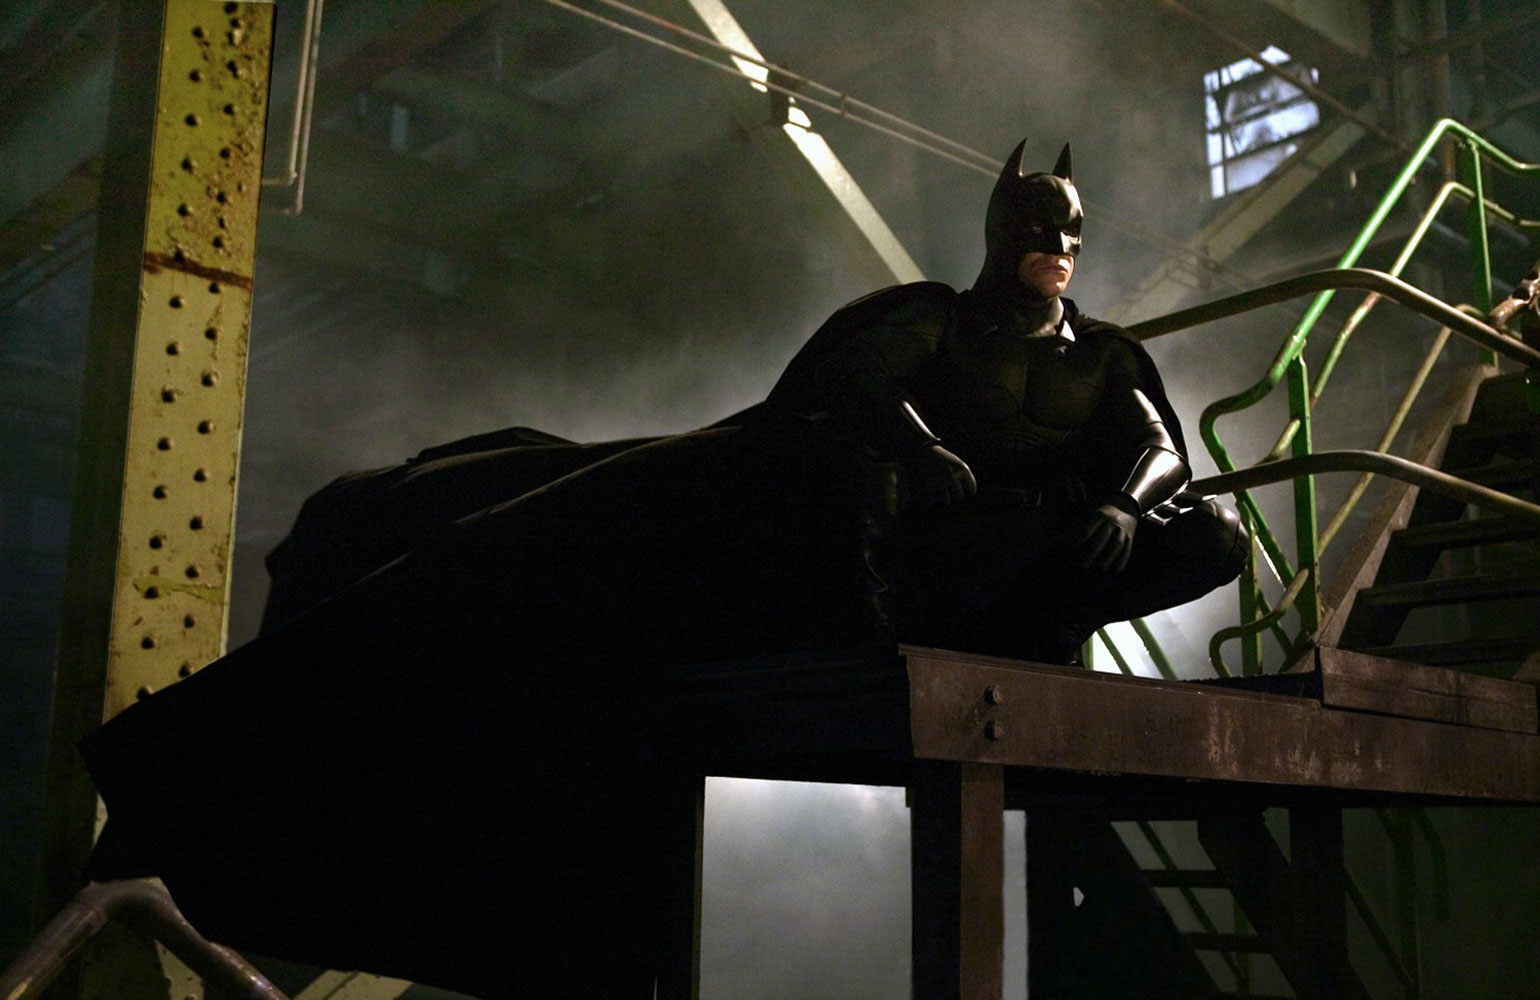 Batman Wallpaper Why Do We Fall Sweetandtalented Com Your Online Source For Celebrity Photos